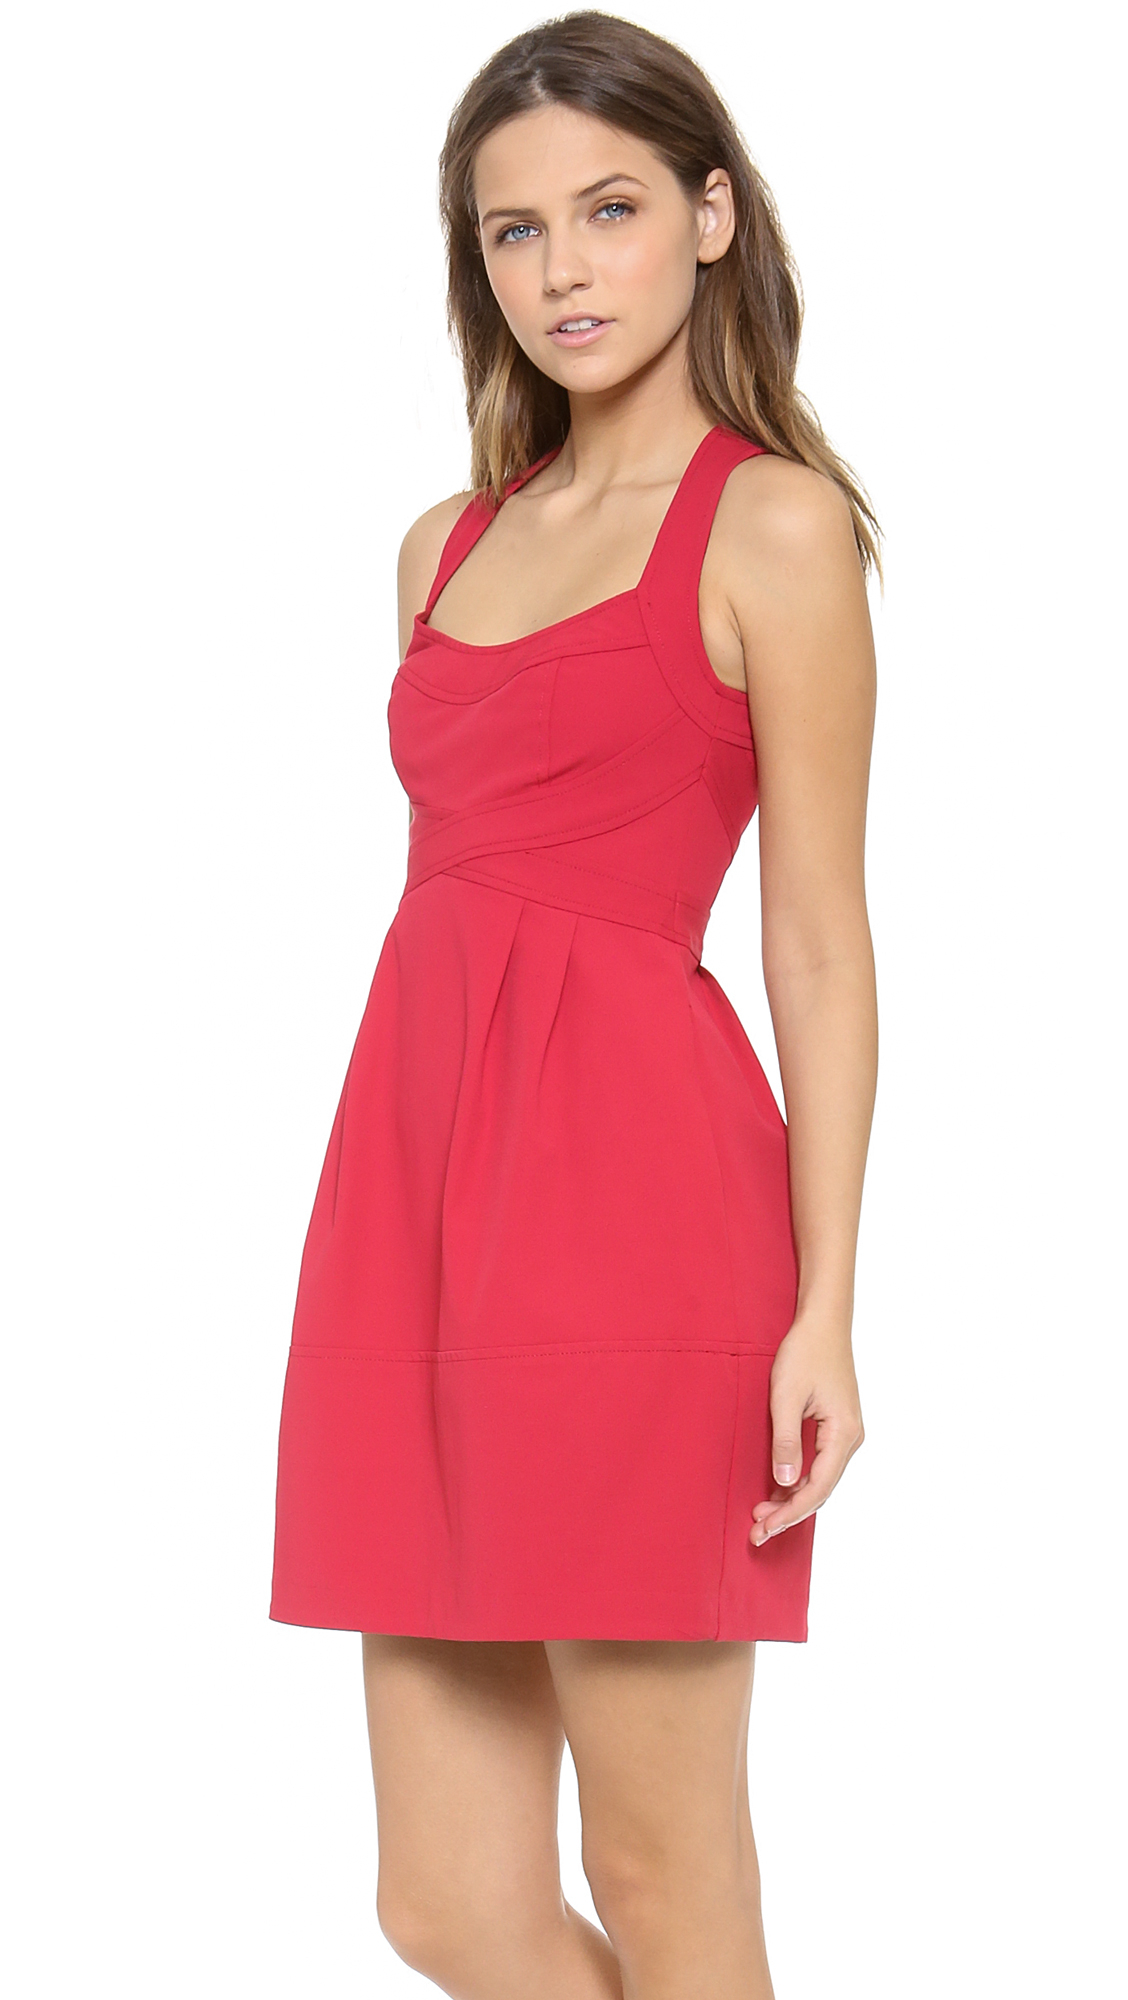 Nanette lepore Dress in Red | Lyst